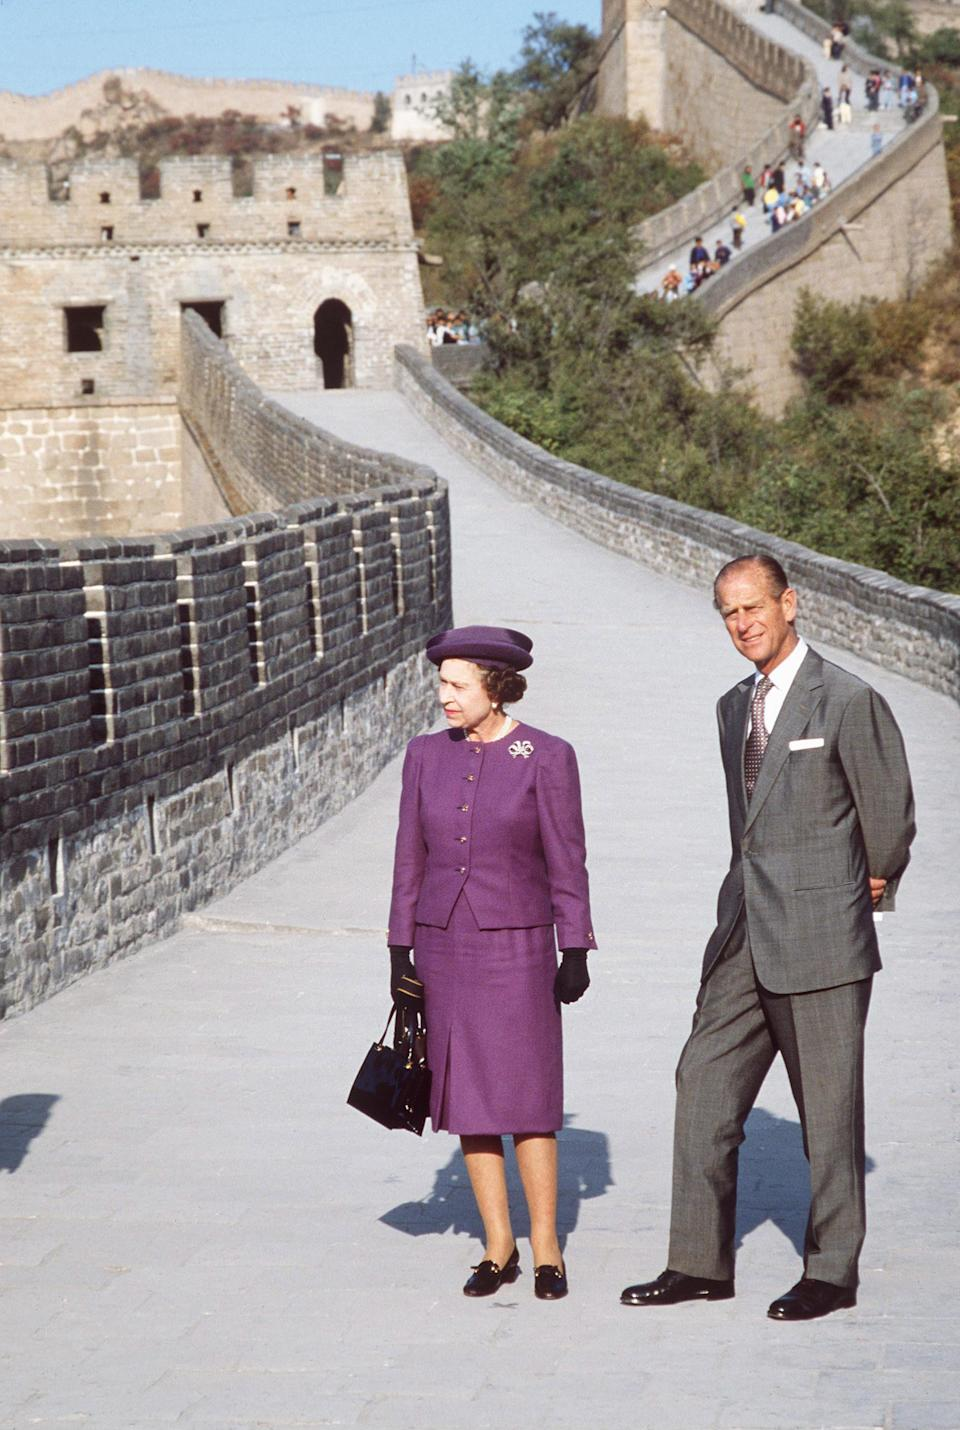 BADALING, CHINA - OCTOBER 14:  The Queen And Prince Philip Visiting The Great Wall Of China At Badaling Near Peking  (Photo by Tim Graham Photo Library via Getty Images)